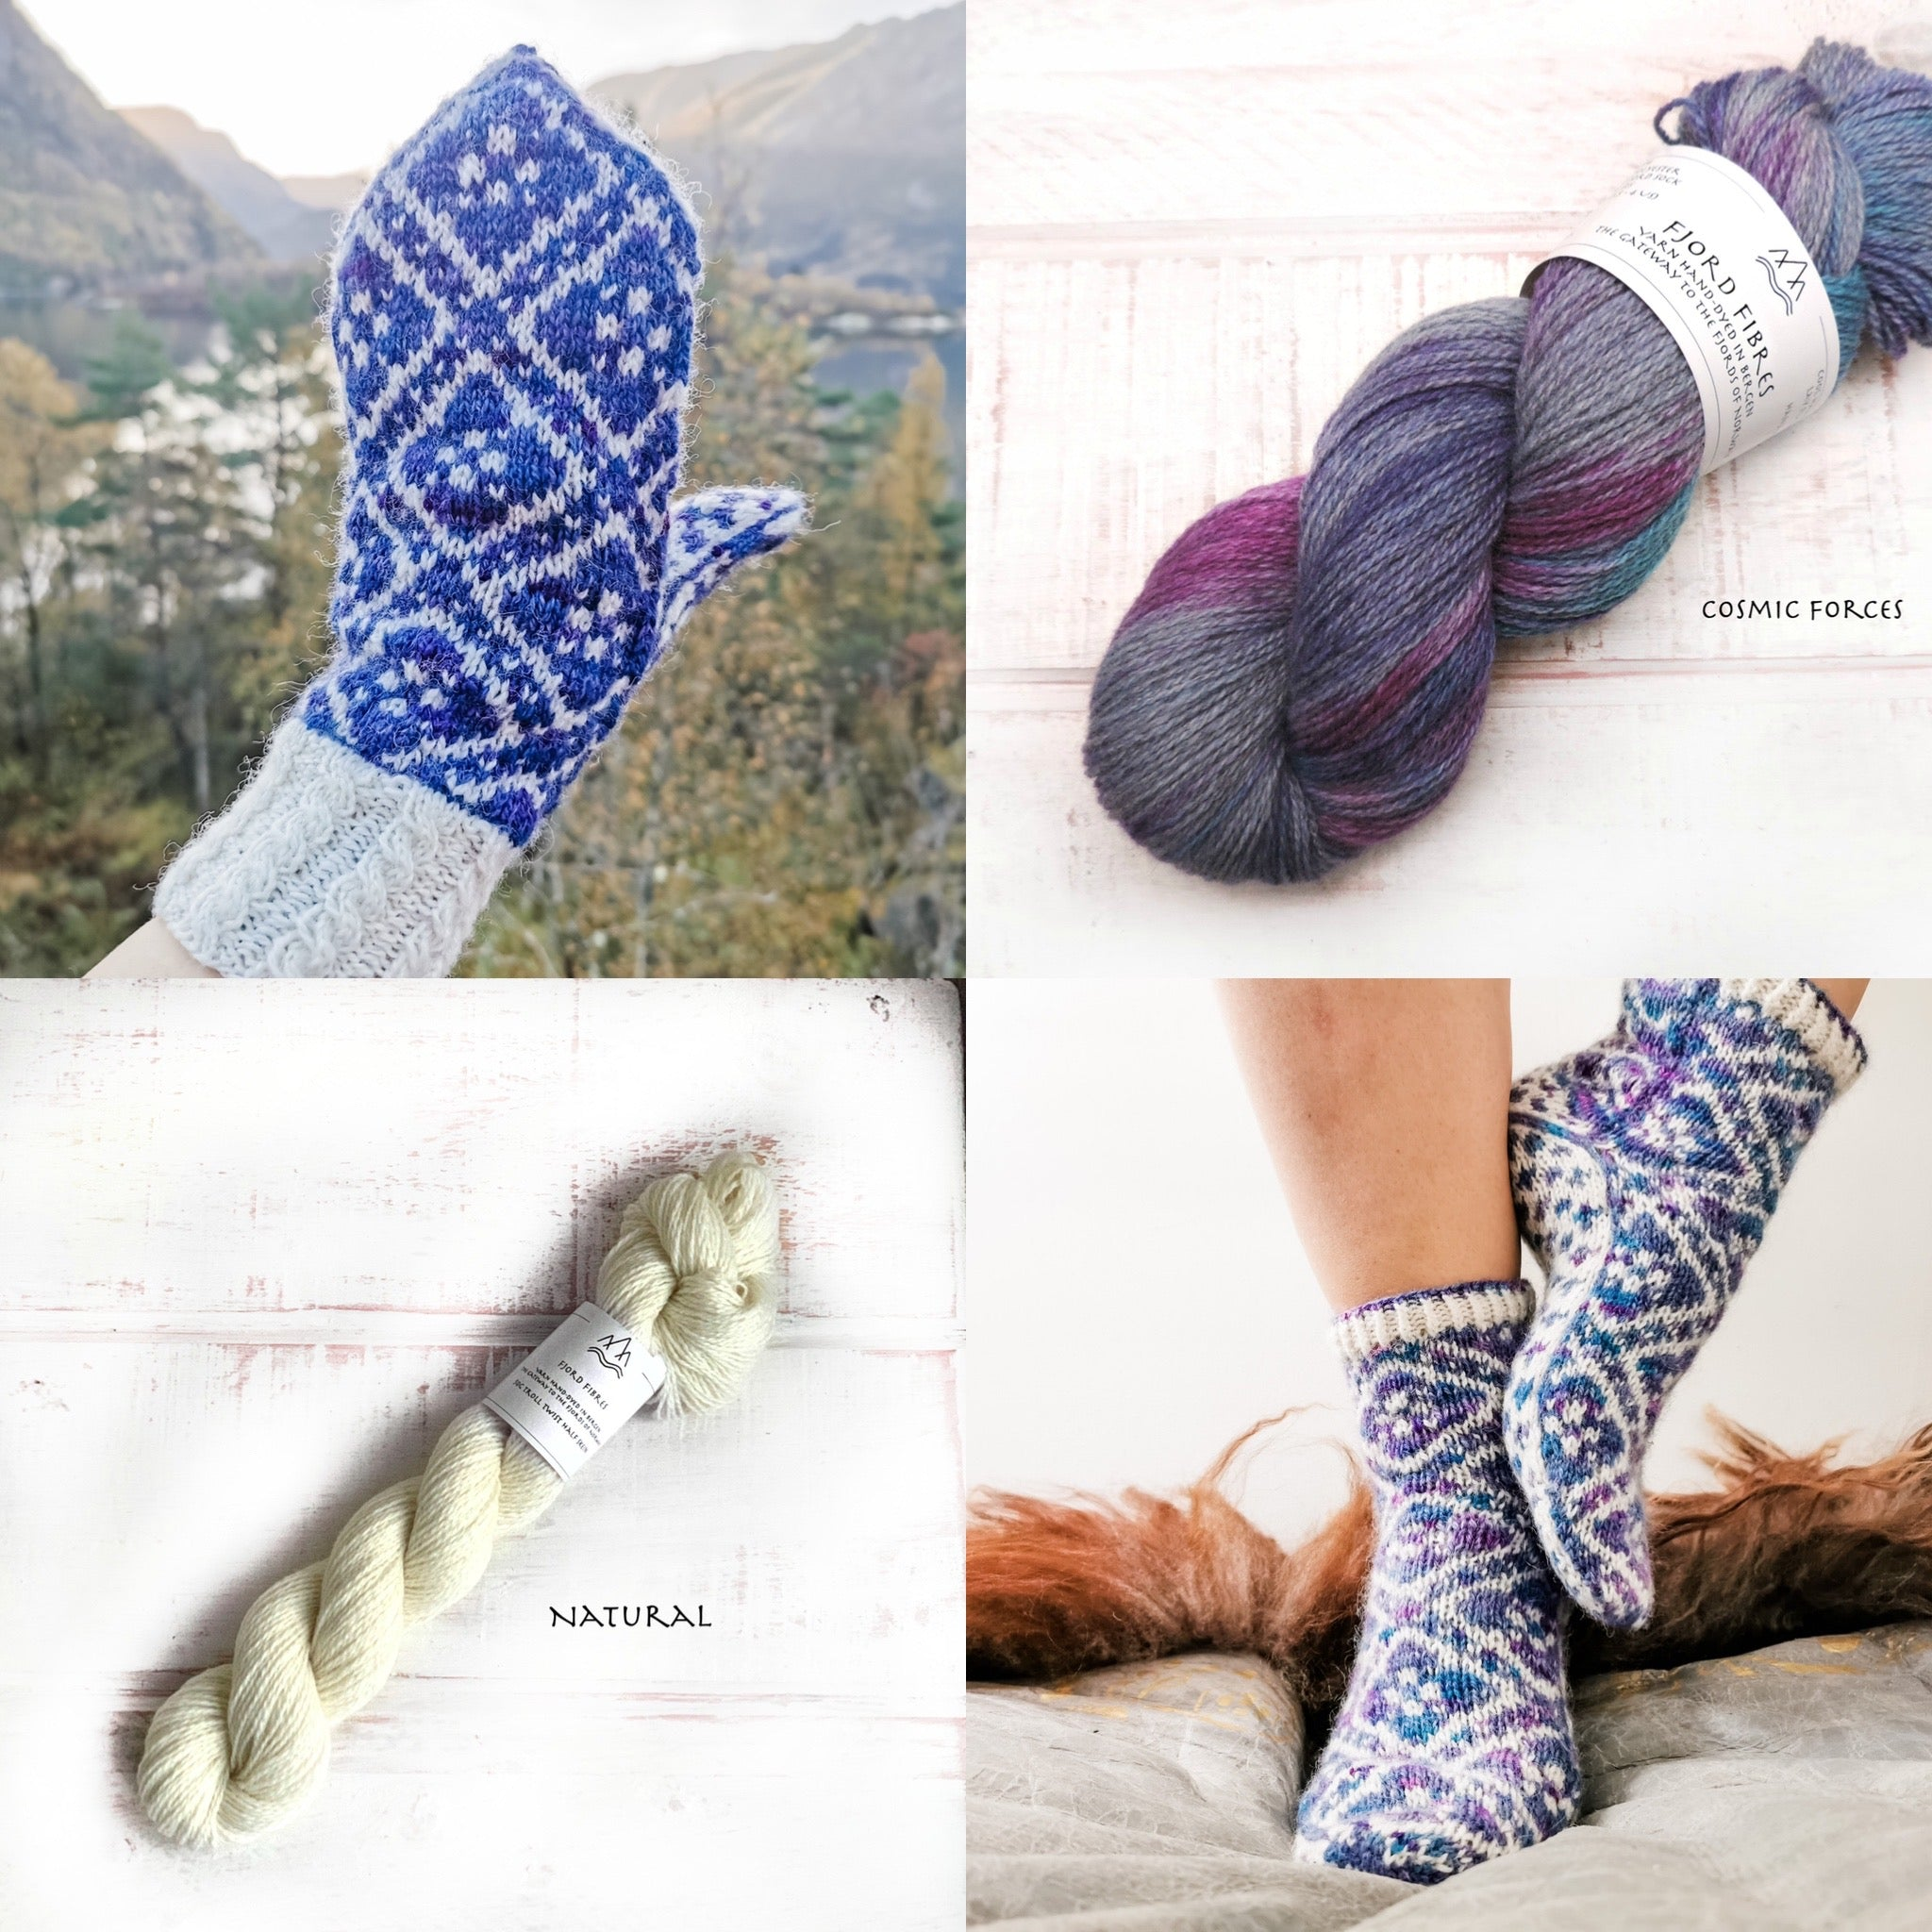 Fleur Élise Mittens and Sock Kit  Bundle - Cosmic Forces/Natural - Yarn and Printed Pattern in English/Norwegian